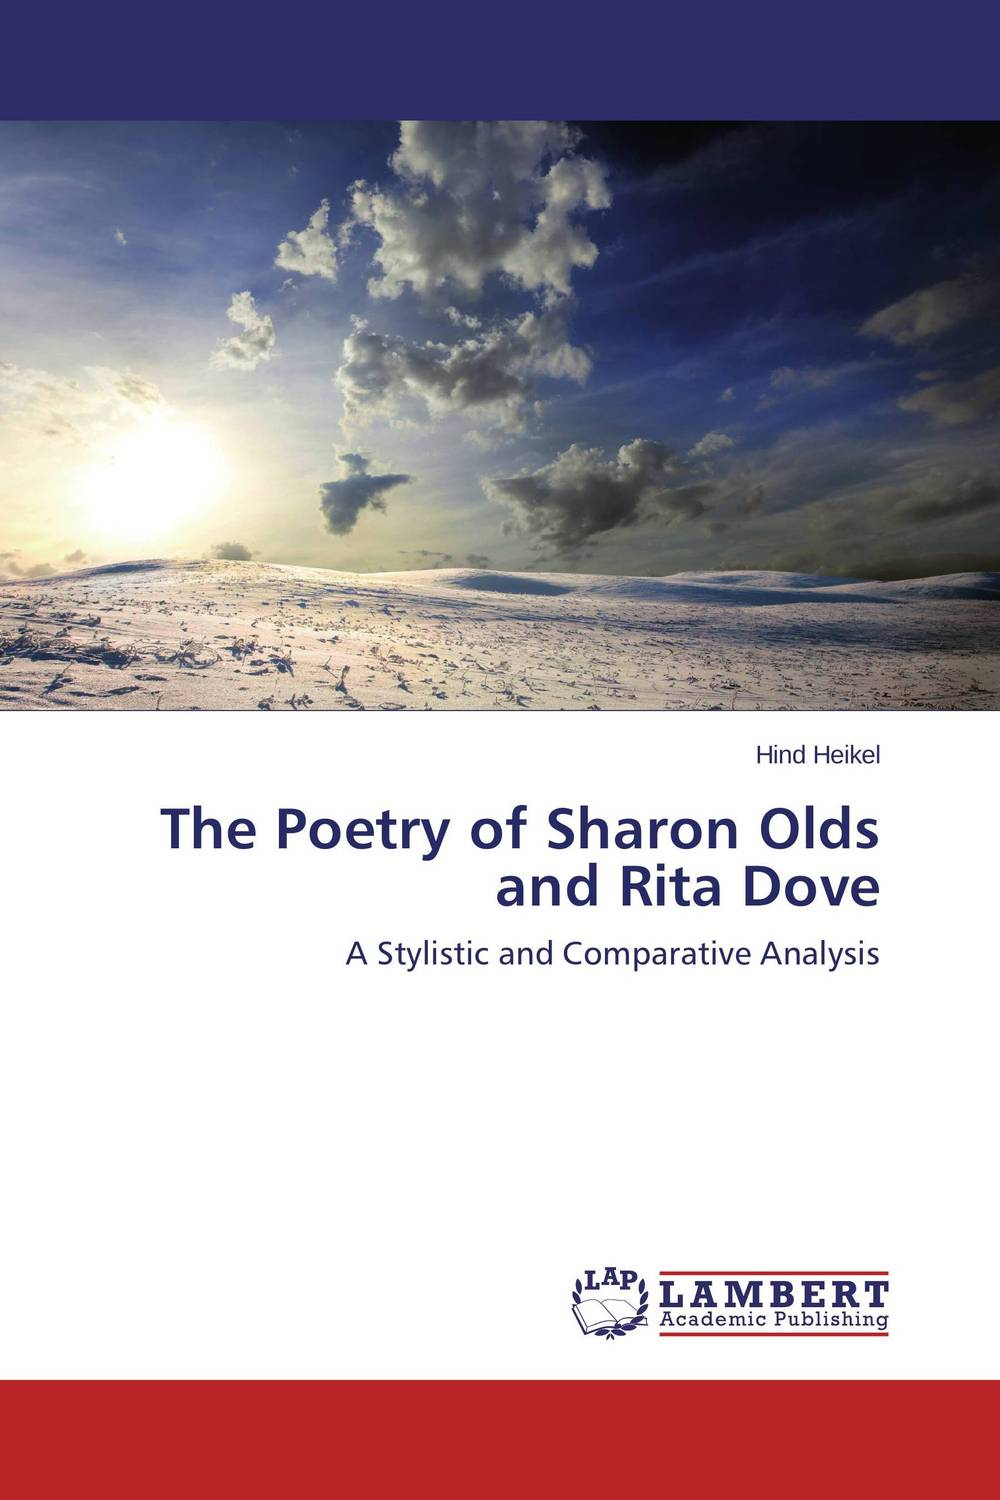 The Poetry of Sharon Olds and Rita Dove и савицкая the ant and the dove муравей и голубика выпуск 4